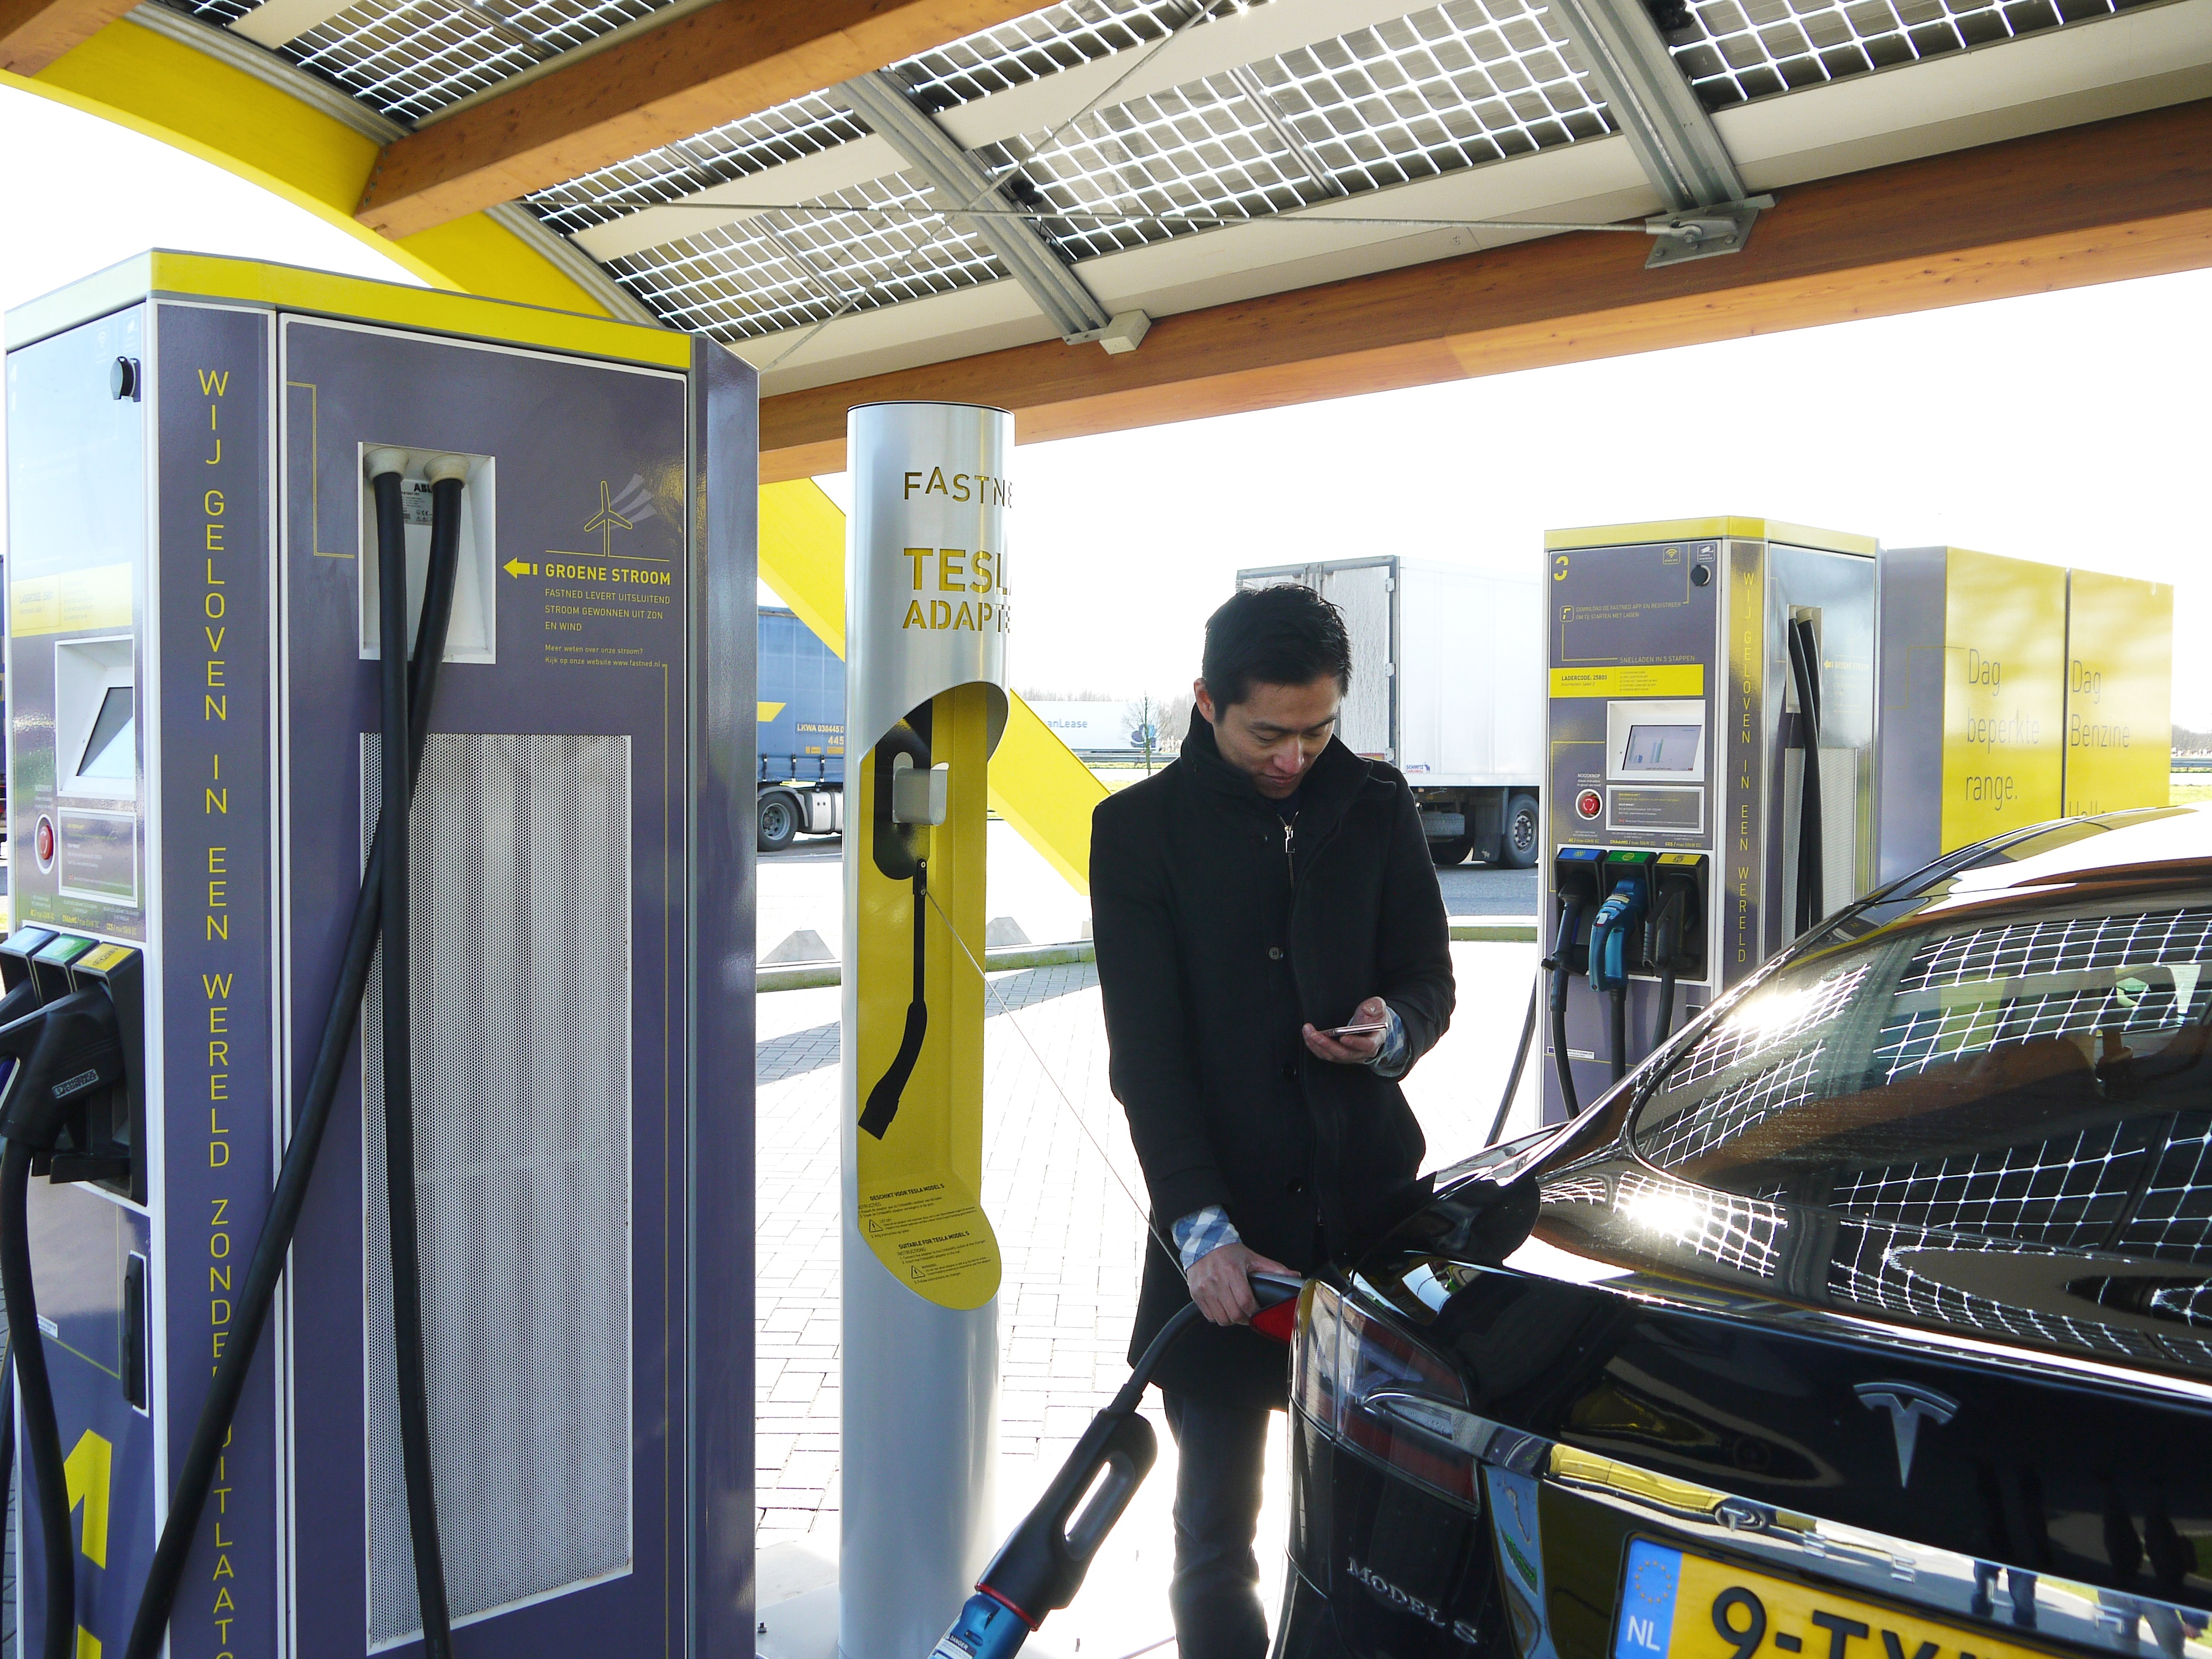 197110 fastned%20station%20inclusief%20tesla%20zuil%20met%20chademo%20adapter c96ac3 original 1456840341